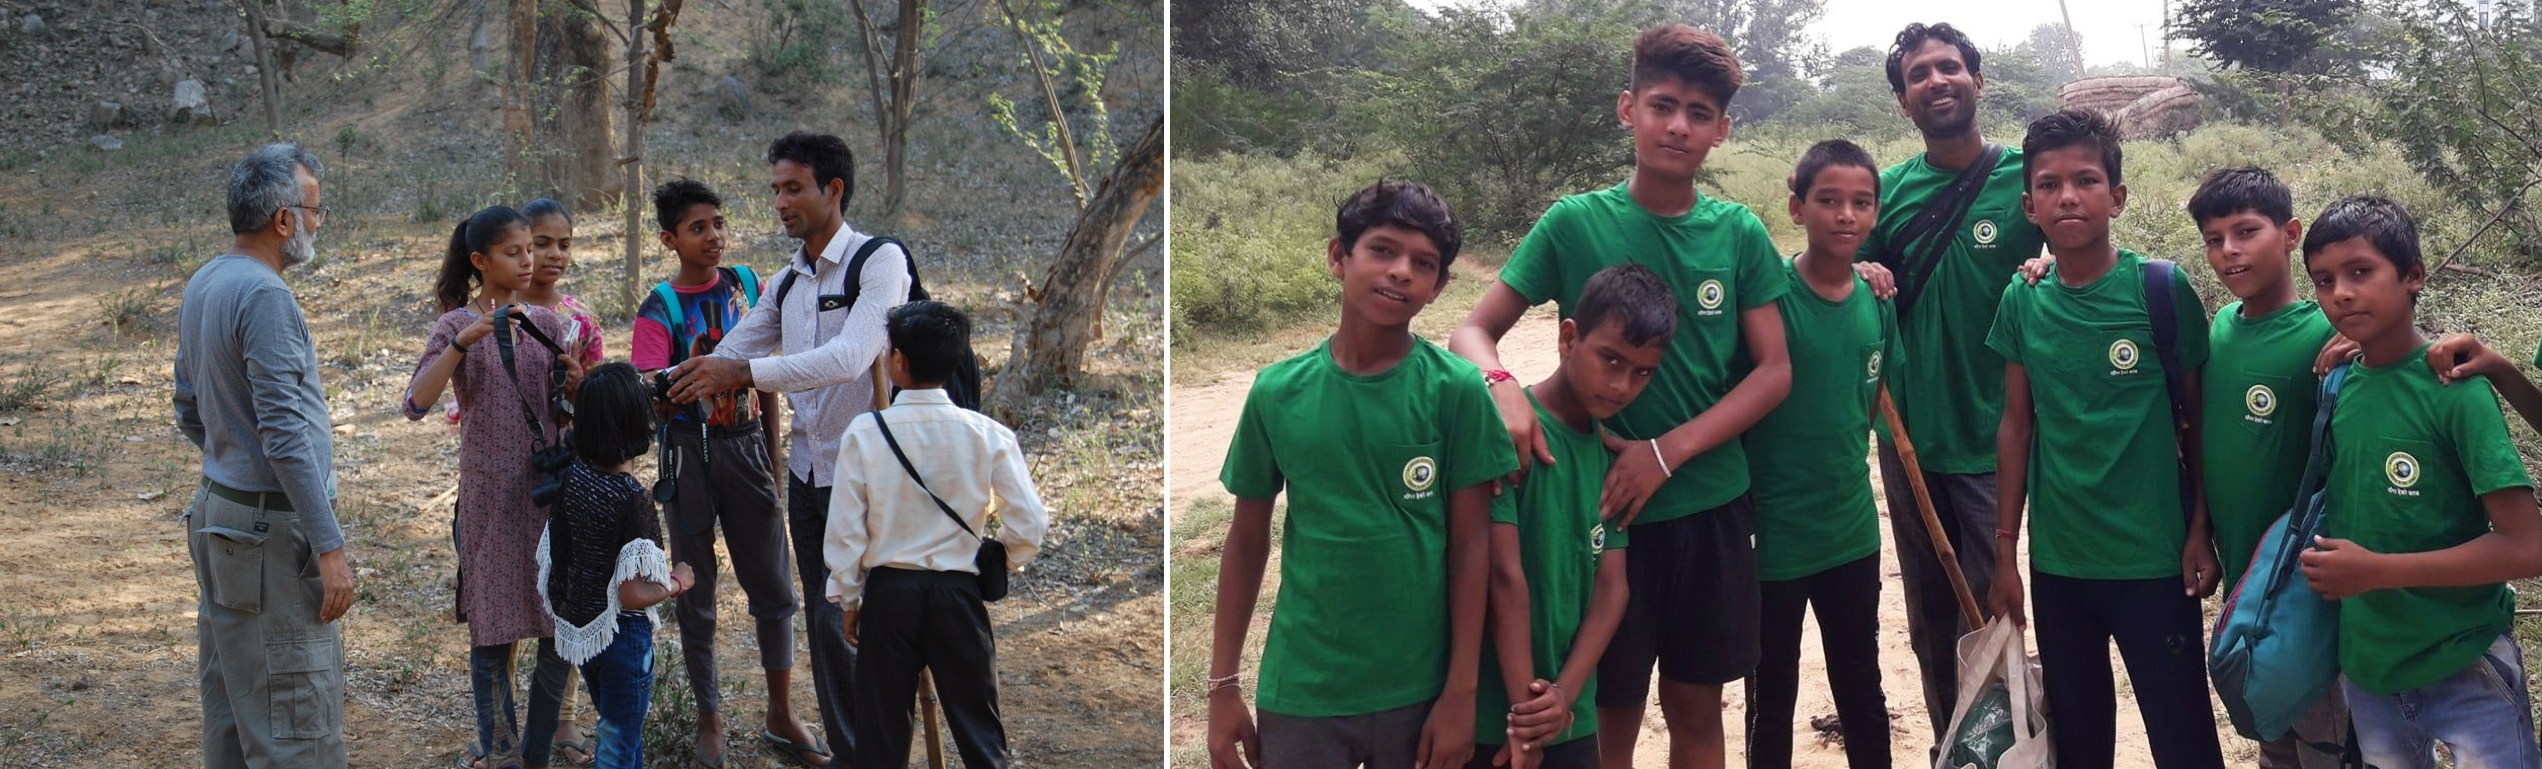 Members of the Mangar Eco Club spend their weekends in their beloved forest, observing its wealth of biodiversity.  Photo (above left): Anirudh Nair, Photos courtesy (top and above right): Sunil Harsana  Environmental activist Sunil Harsana has been working to preserve the Mangar Bani forest for the past 10 years. Cover Photo Courtesy: Sunil Harsana